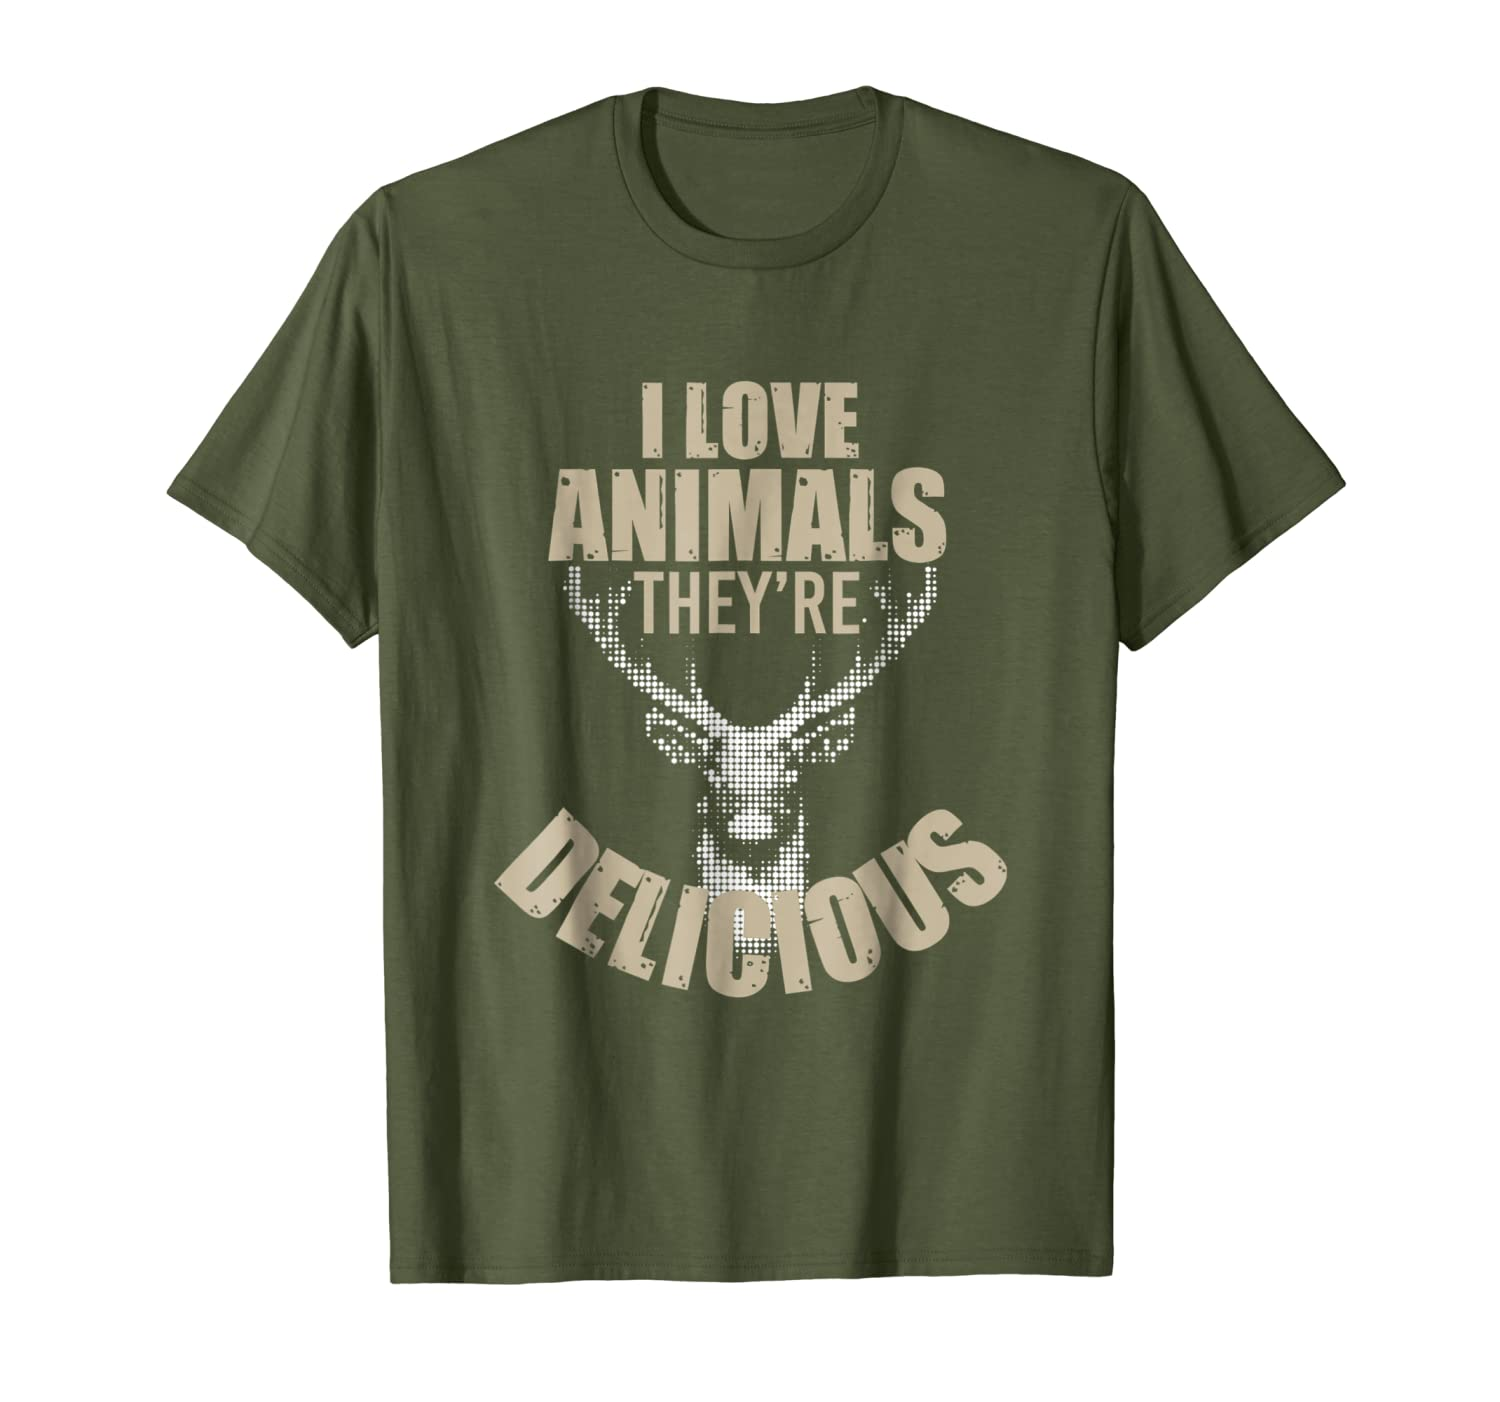 I Love Animals Theyre Delicious Funny Hunting T-Shirt Unisex Tshirt